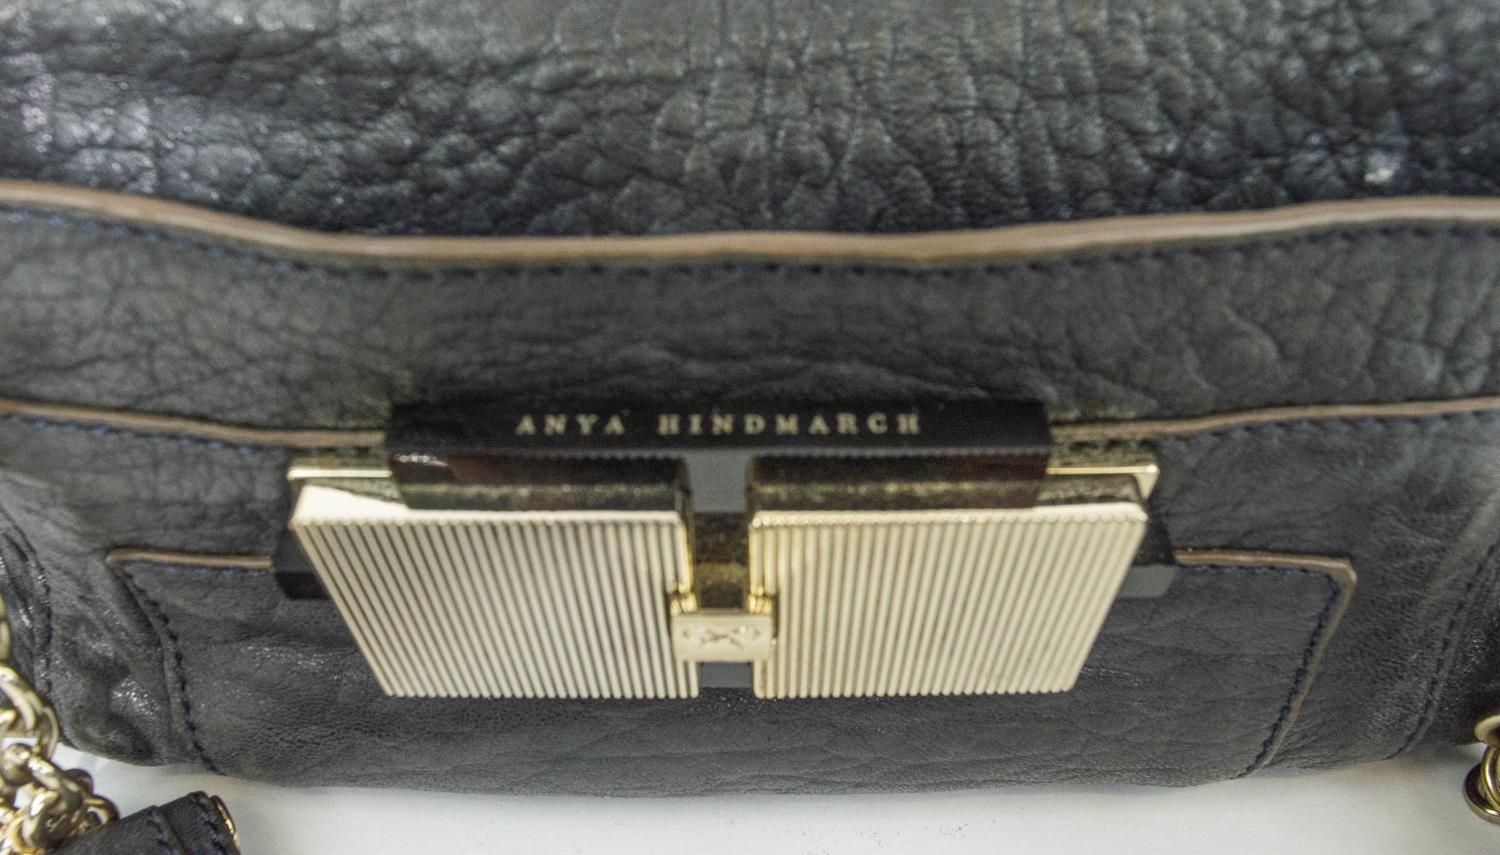 ANYA HINDMARCH SHOULDER BAG, leather with leather and chain strap, gun metal and silver hardware, - Image 2 of 9